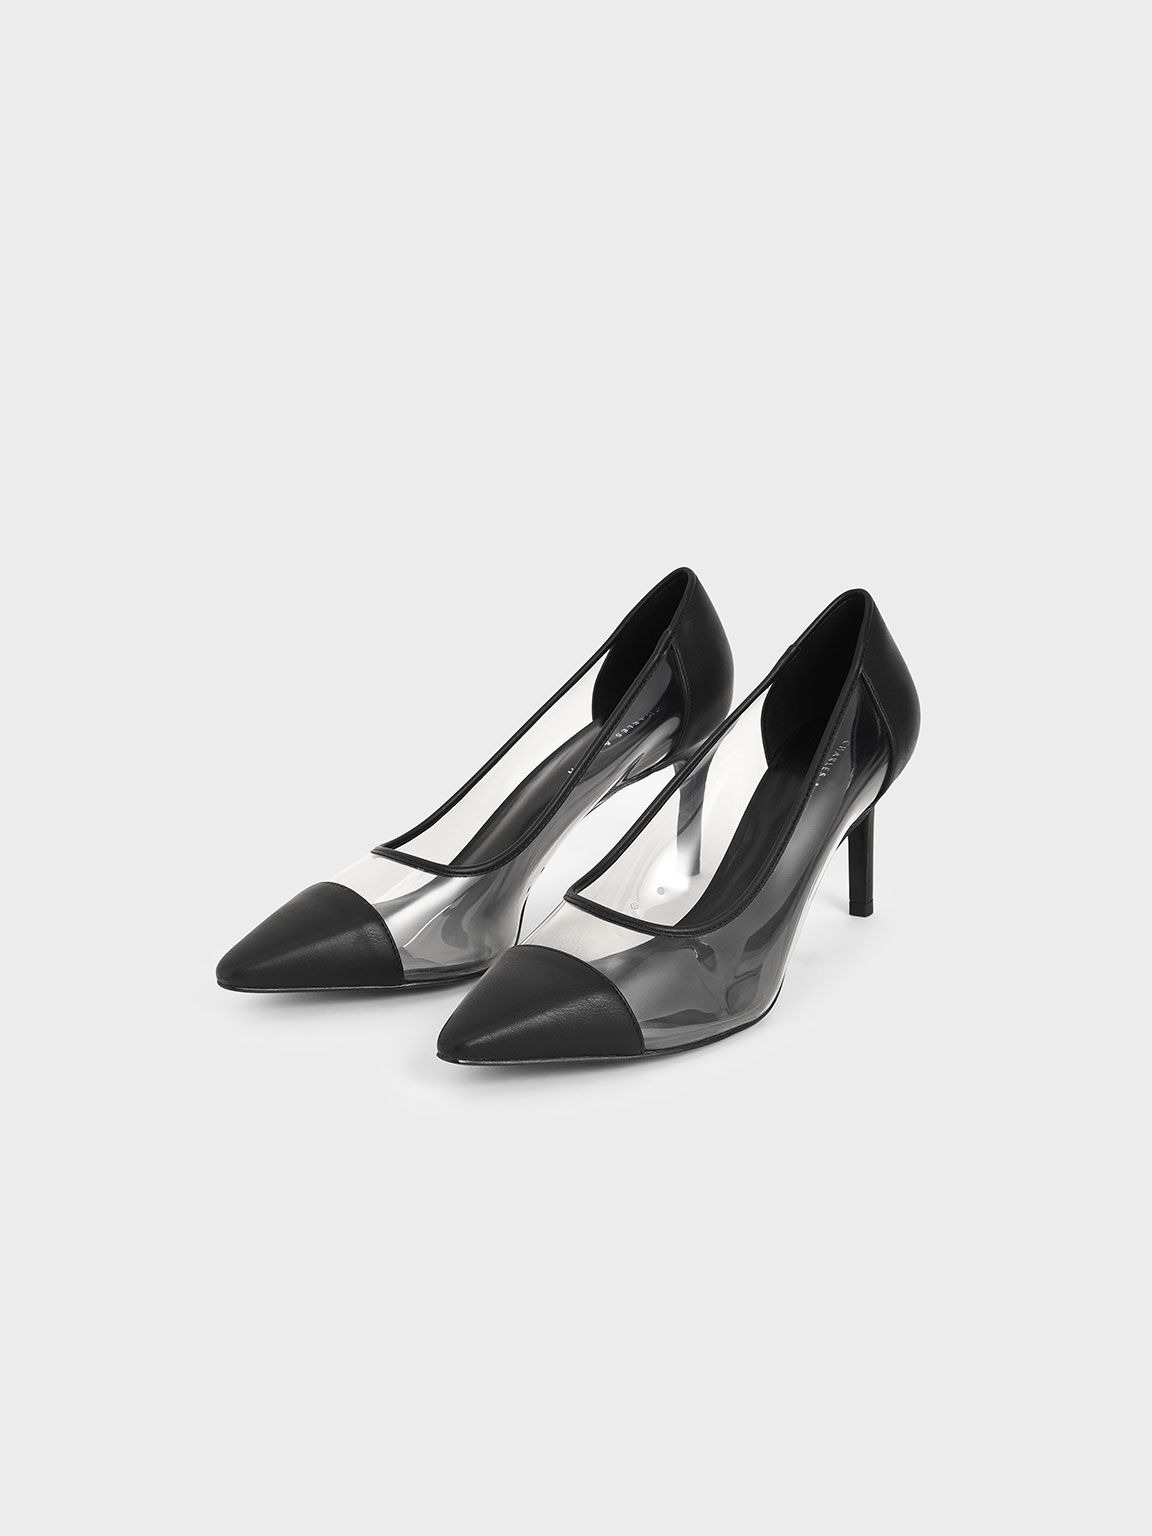 Toe Cap See-Through Pumps, Black Textured, hi-res